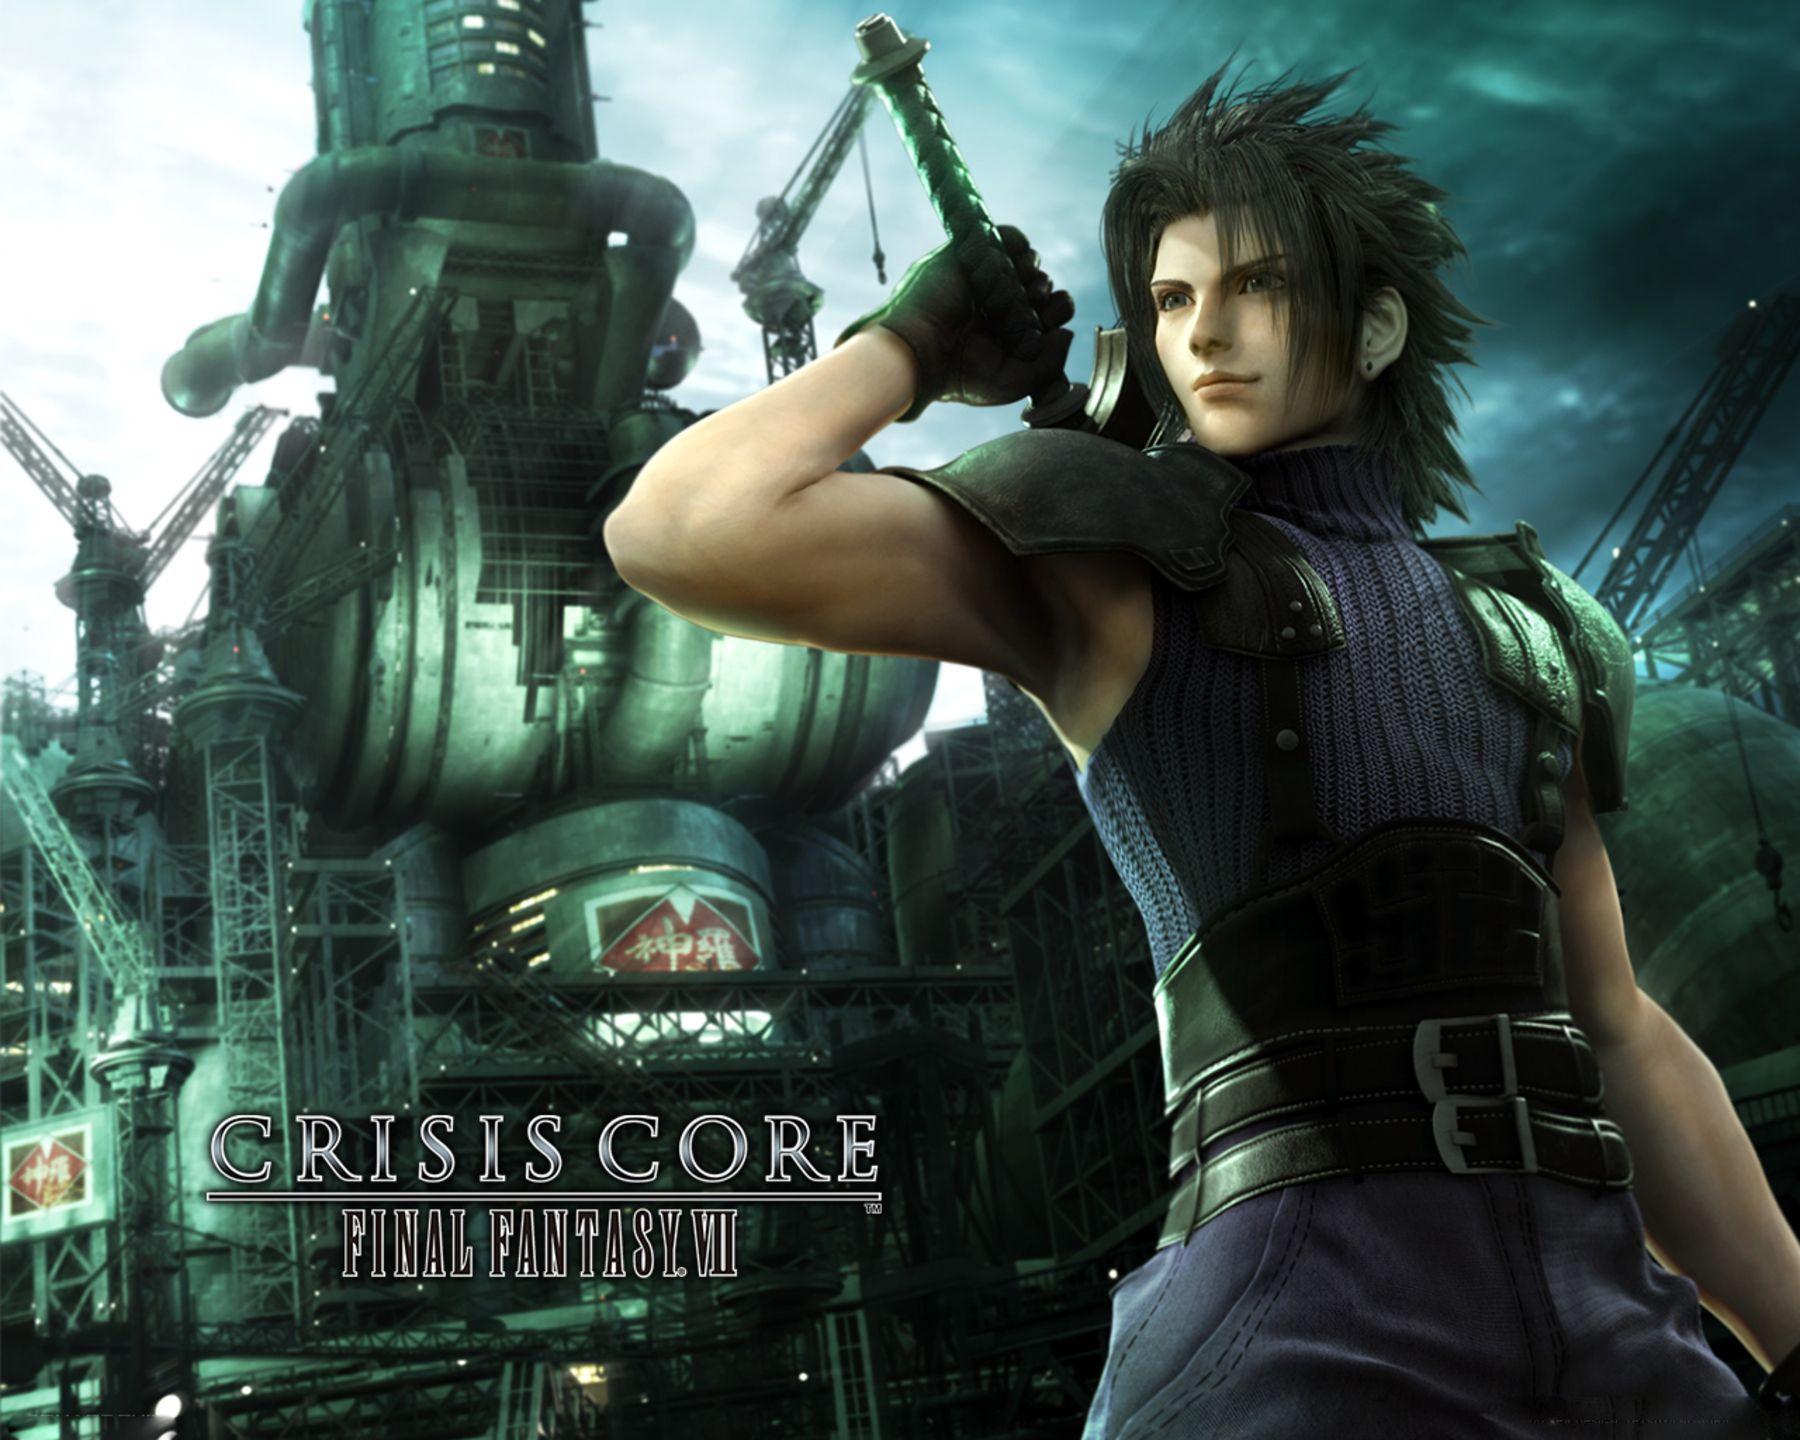 89 final fantasy vii advent children hd wallpapers backgrounds - Hd Wallpaper And Background Photos Of Ffvii Crisis Core Wallpaper For Fans Of Final Fantasy Images